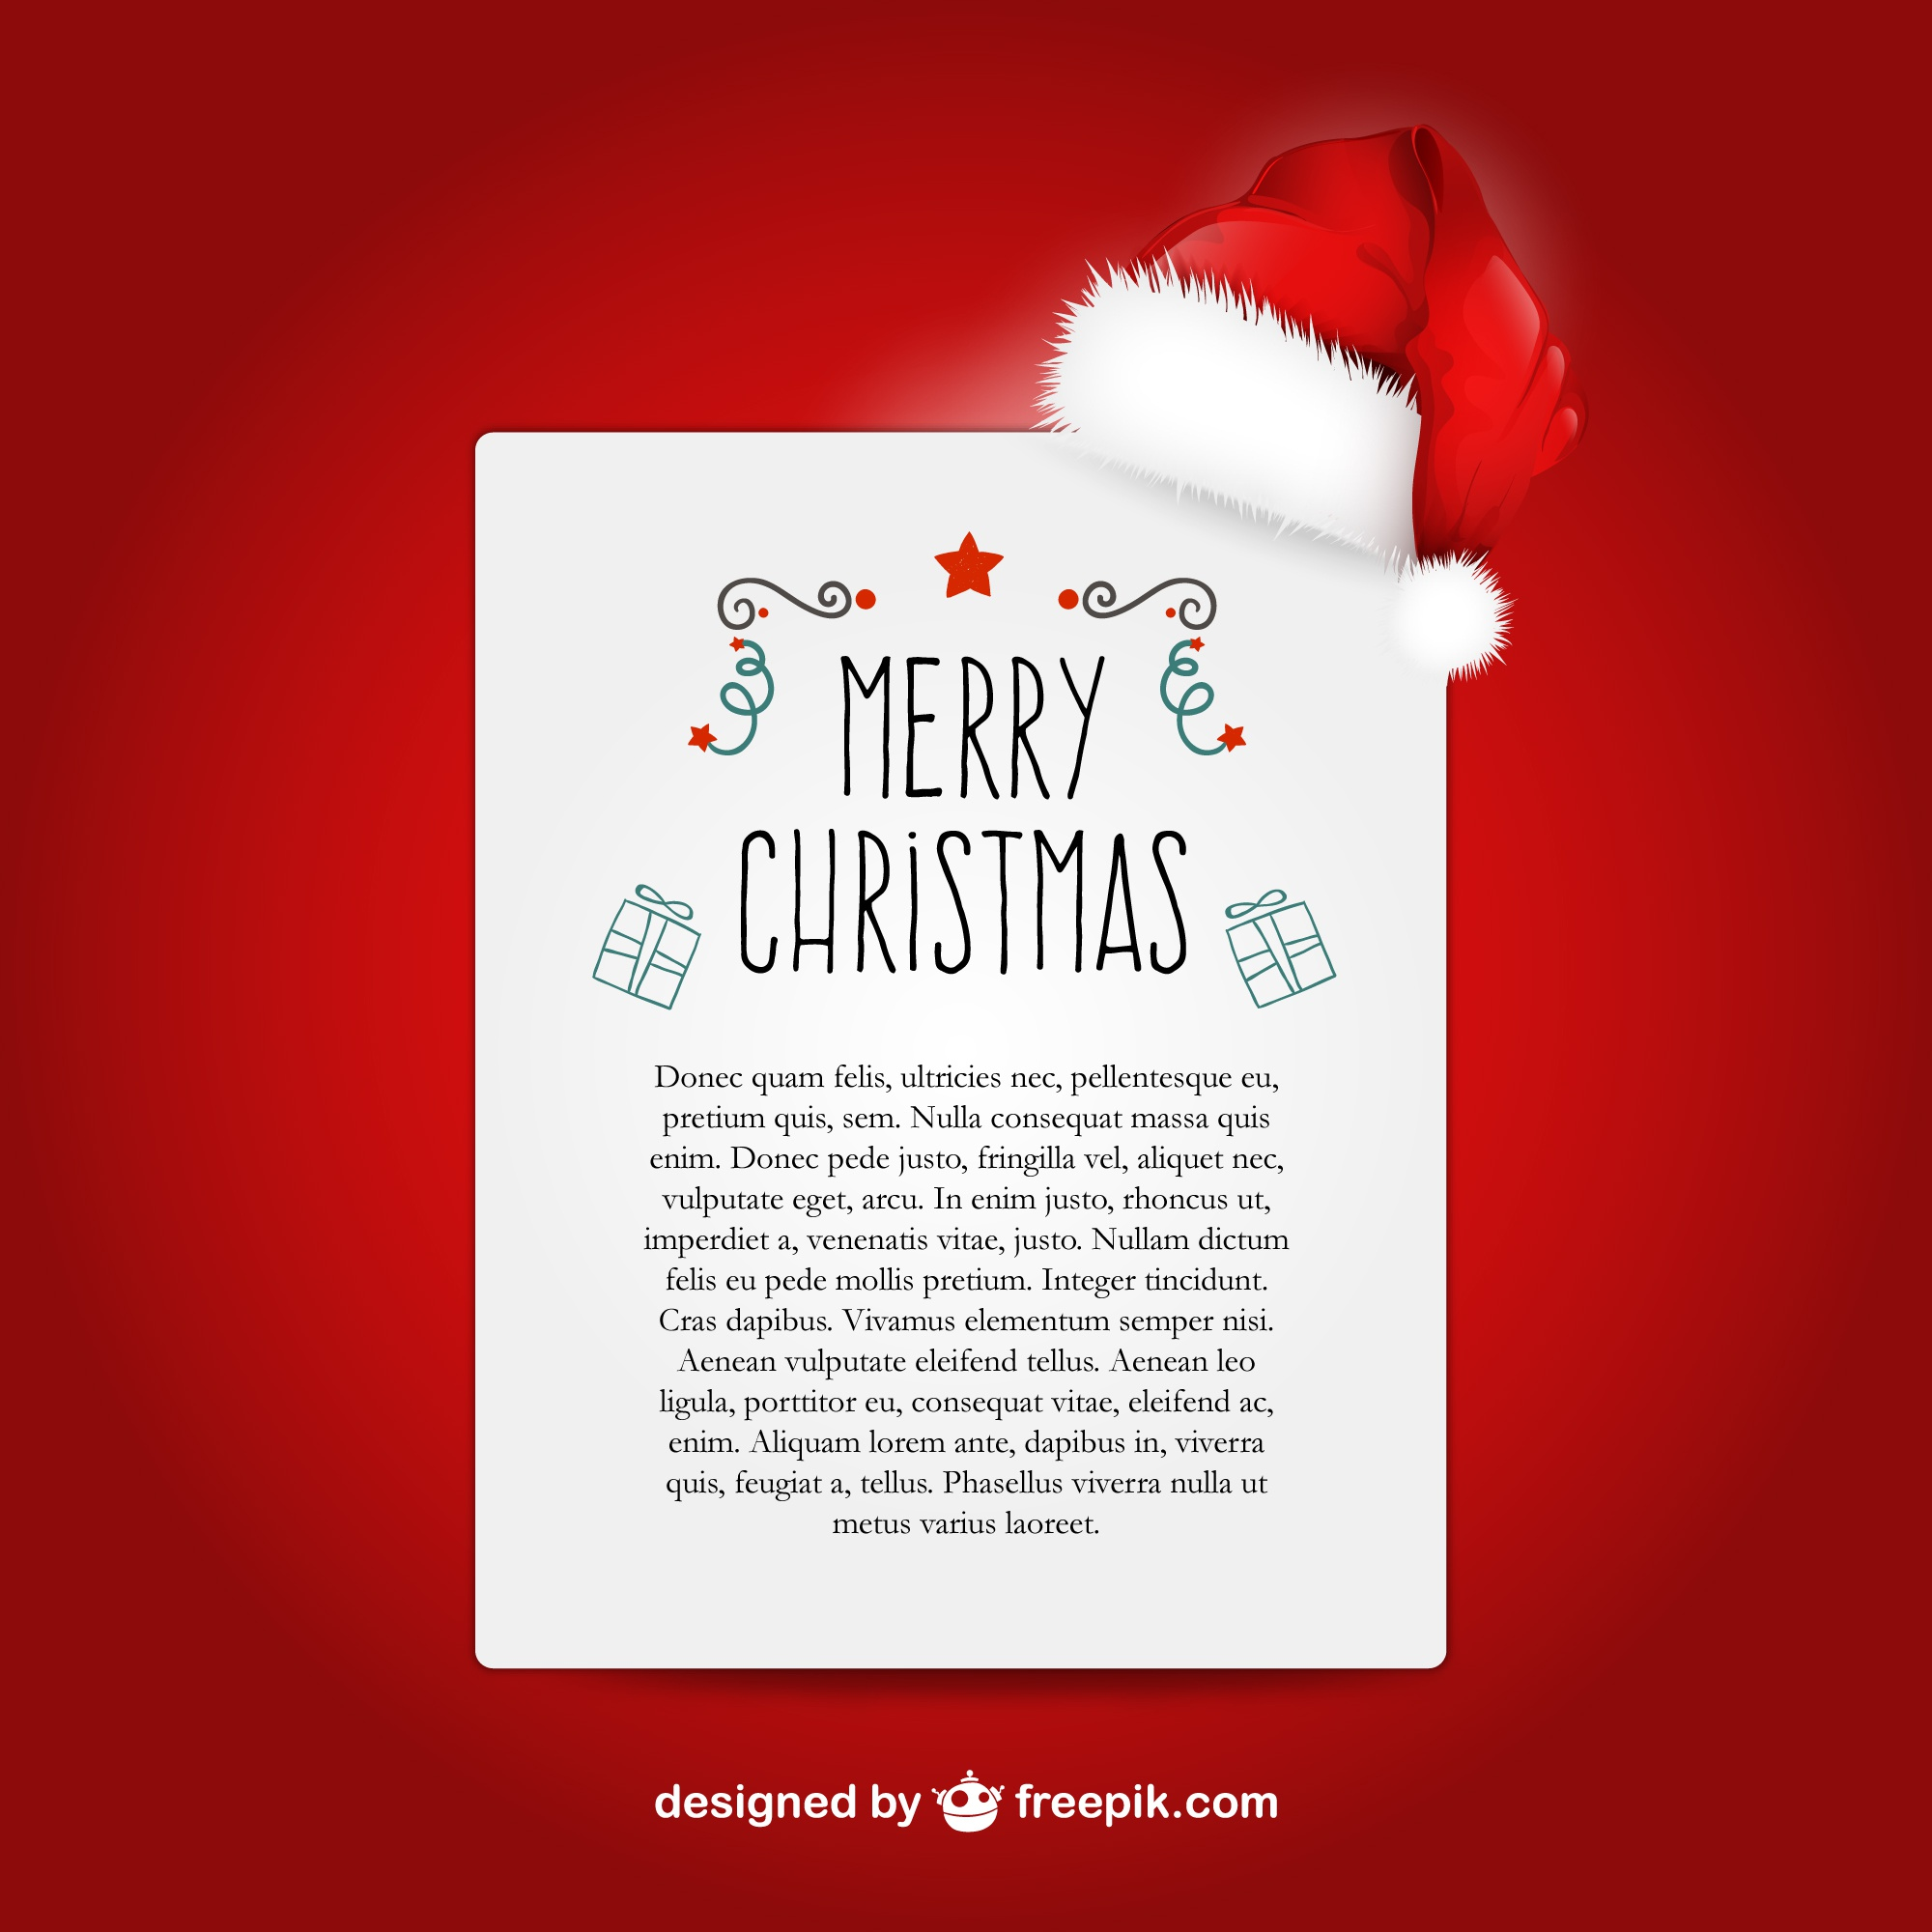 Christmas letter template with Santa Claus hat 18301 38 2 months ago i2JGy6ny